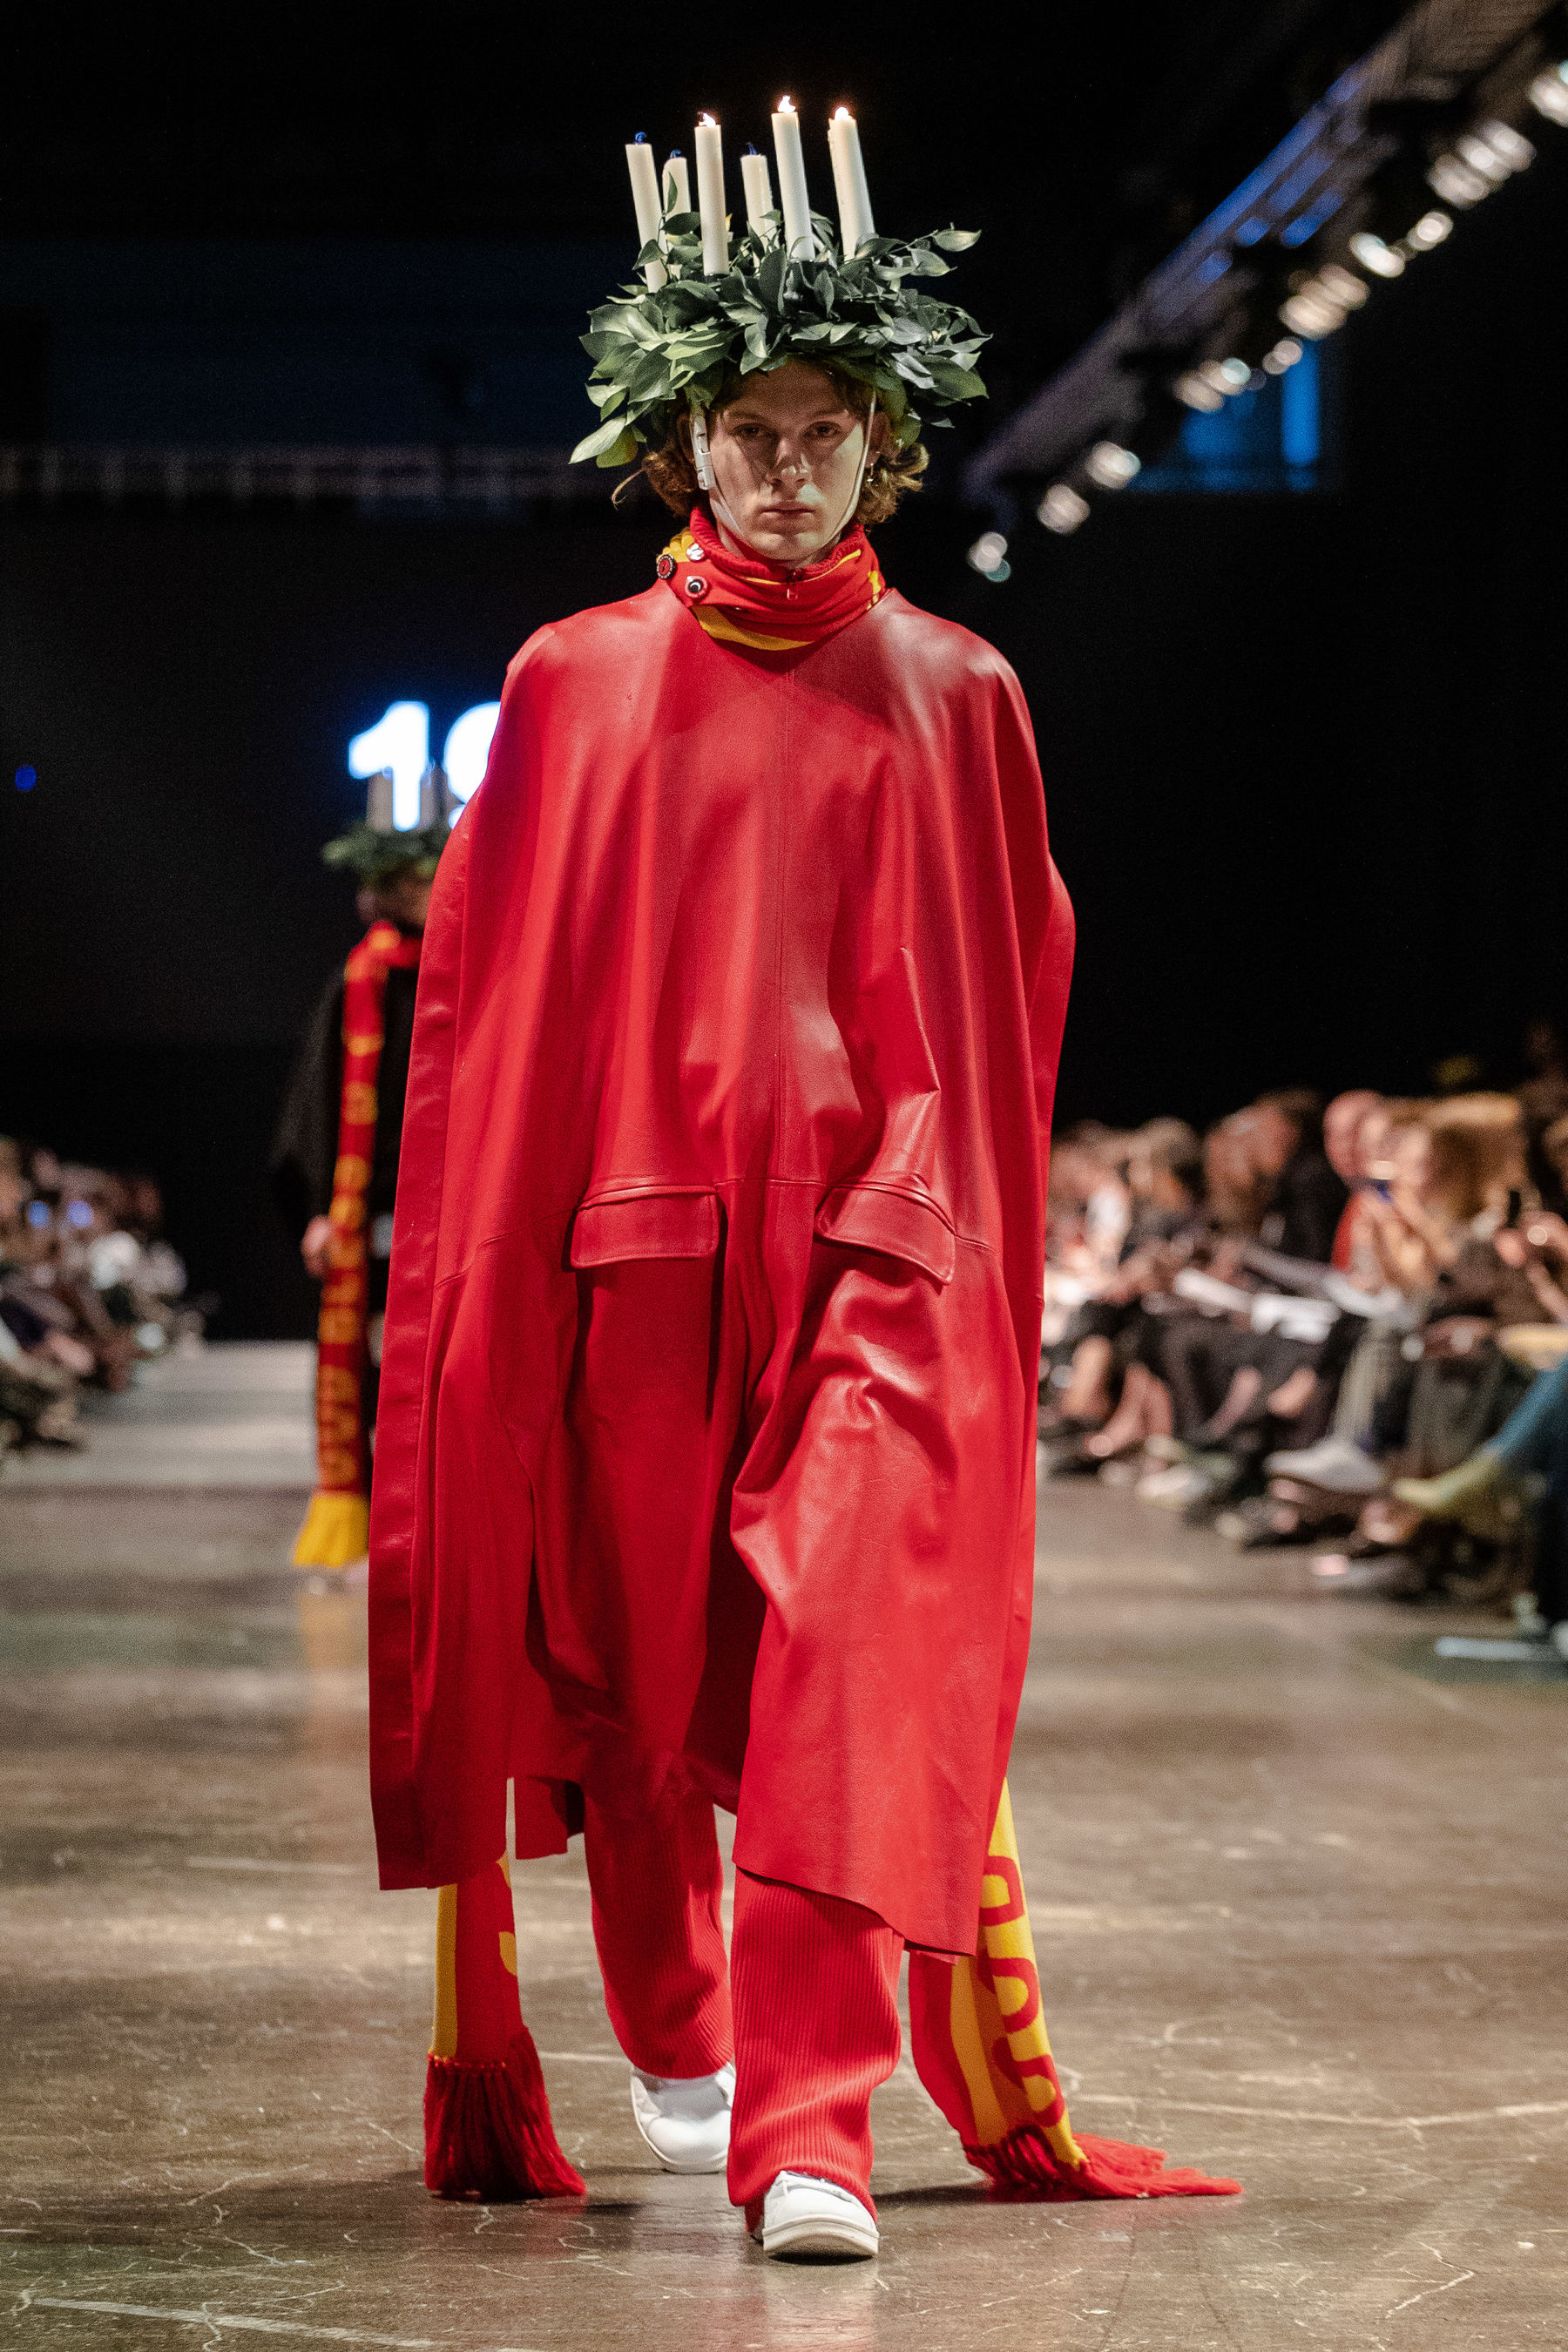 Model walking catwalk in red garment and headpiece with candles